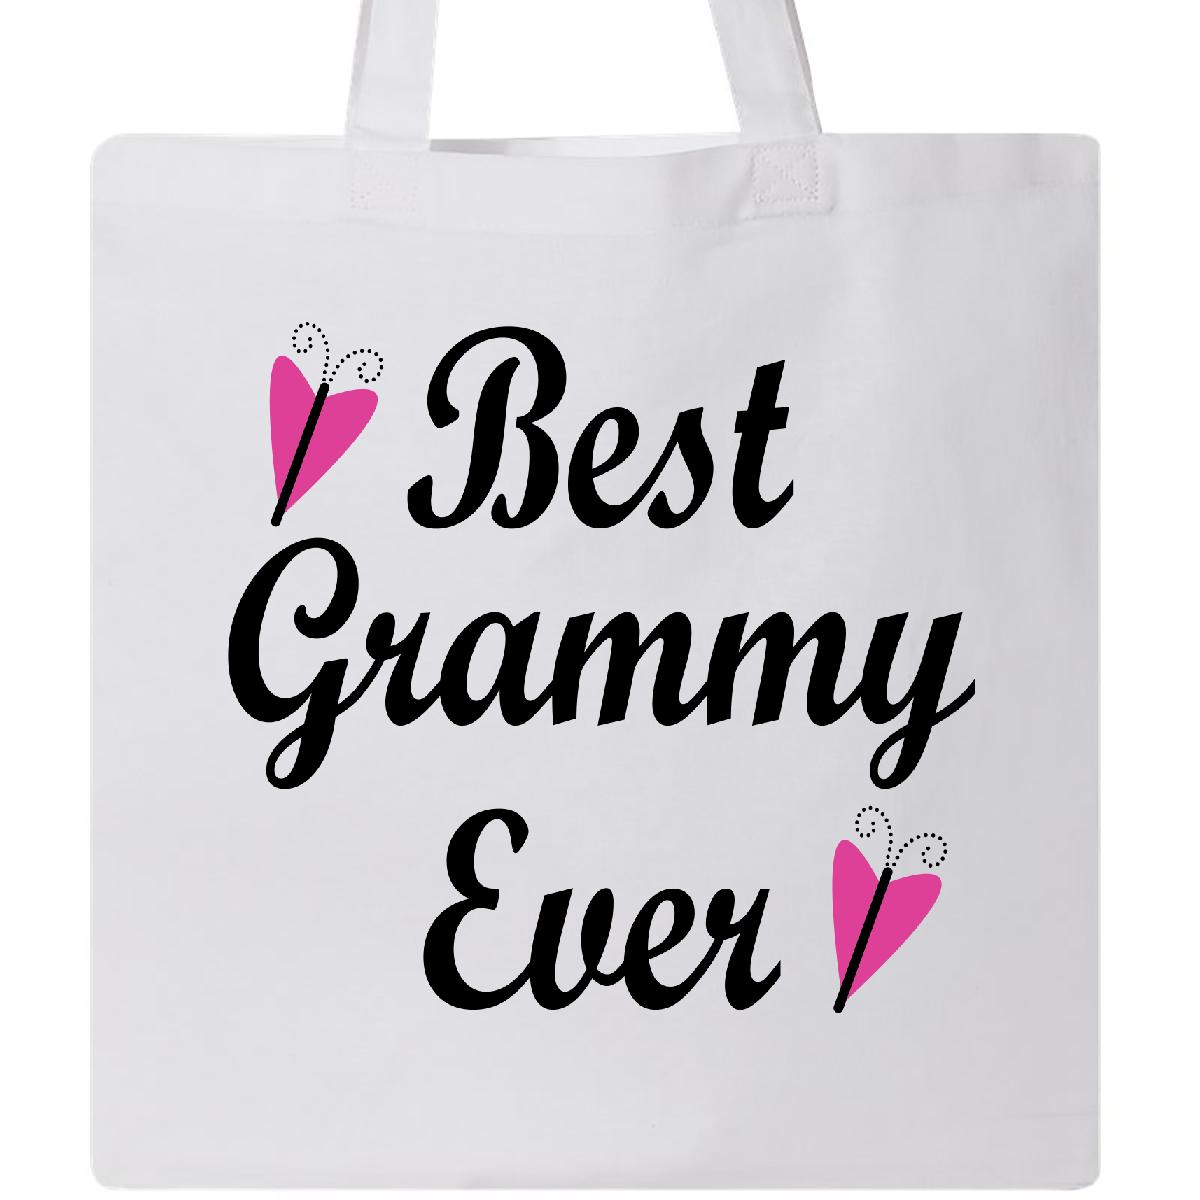 8a66f47a1f36 Details about Inktastic Best Grammy Ever Tote Bag Gift Family Grandma  Grandmother Grandparents